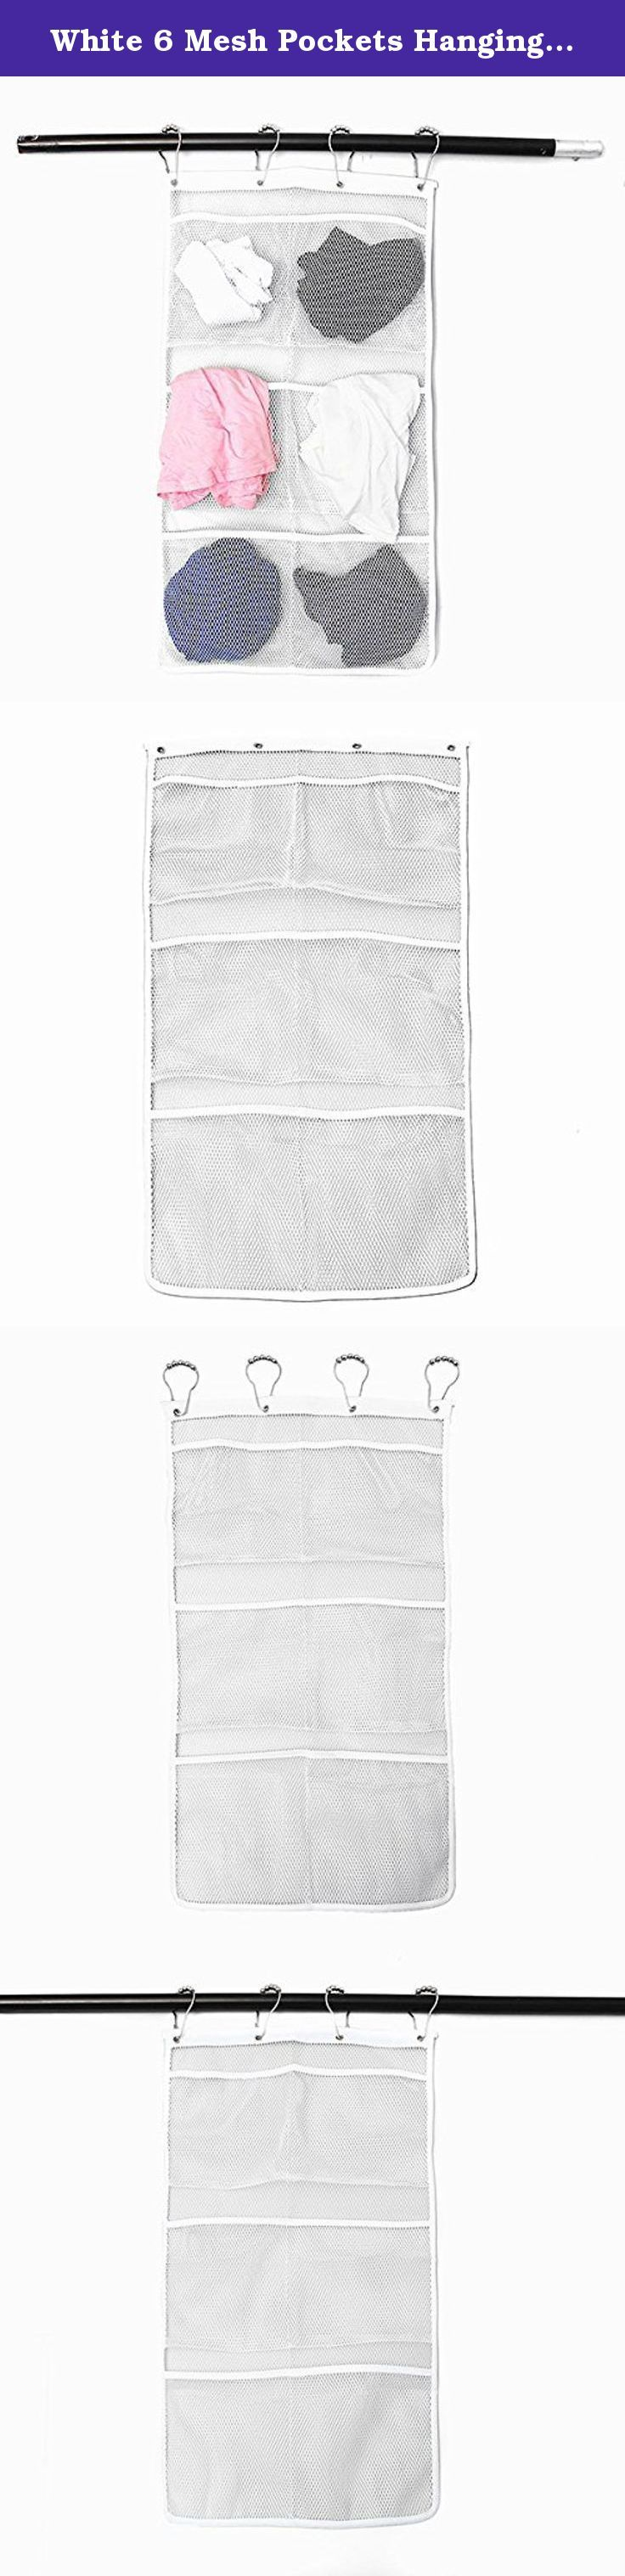 White 6 Mesh Pockets Hanging Organizer Bath Storage Hanger Bag // Blancos 6 bolsillos de malla colgantes organizador baño suspensión del bolso de almacenamiento. Description : White 6 Mesh Pockets Hanging Organizer Bath Storage Hanger Bag This white pocket organizer has 6 different mesh pockets and it is great to store all your bathing and shower supplies. Also, it is a great tools to store your daily stuff and and kids toys :) Specification : Material : mesh Color : white Weight :64g Size…